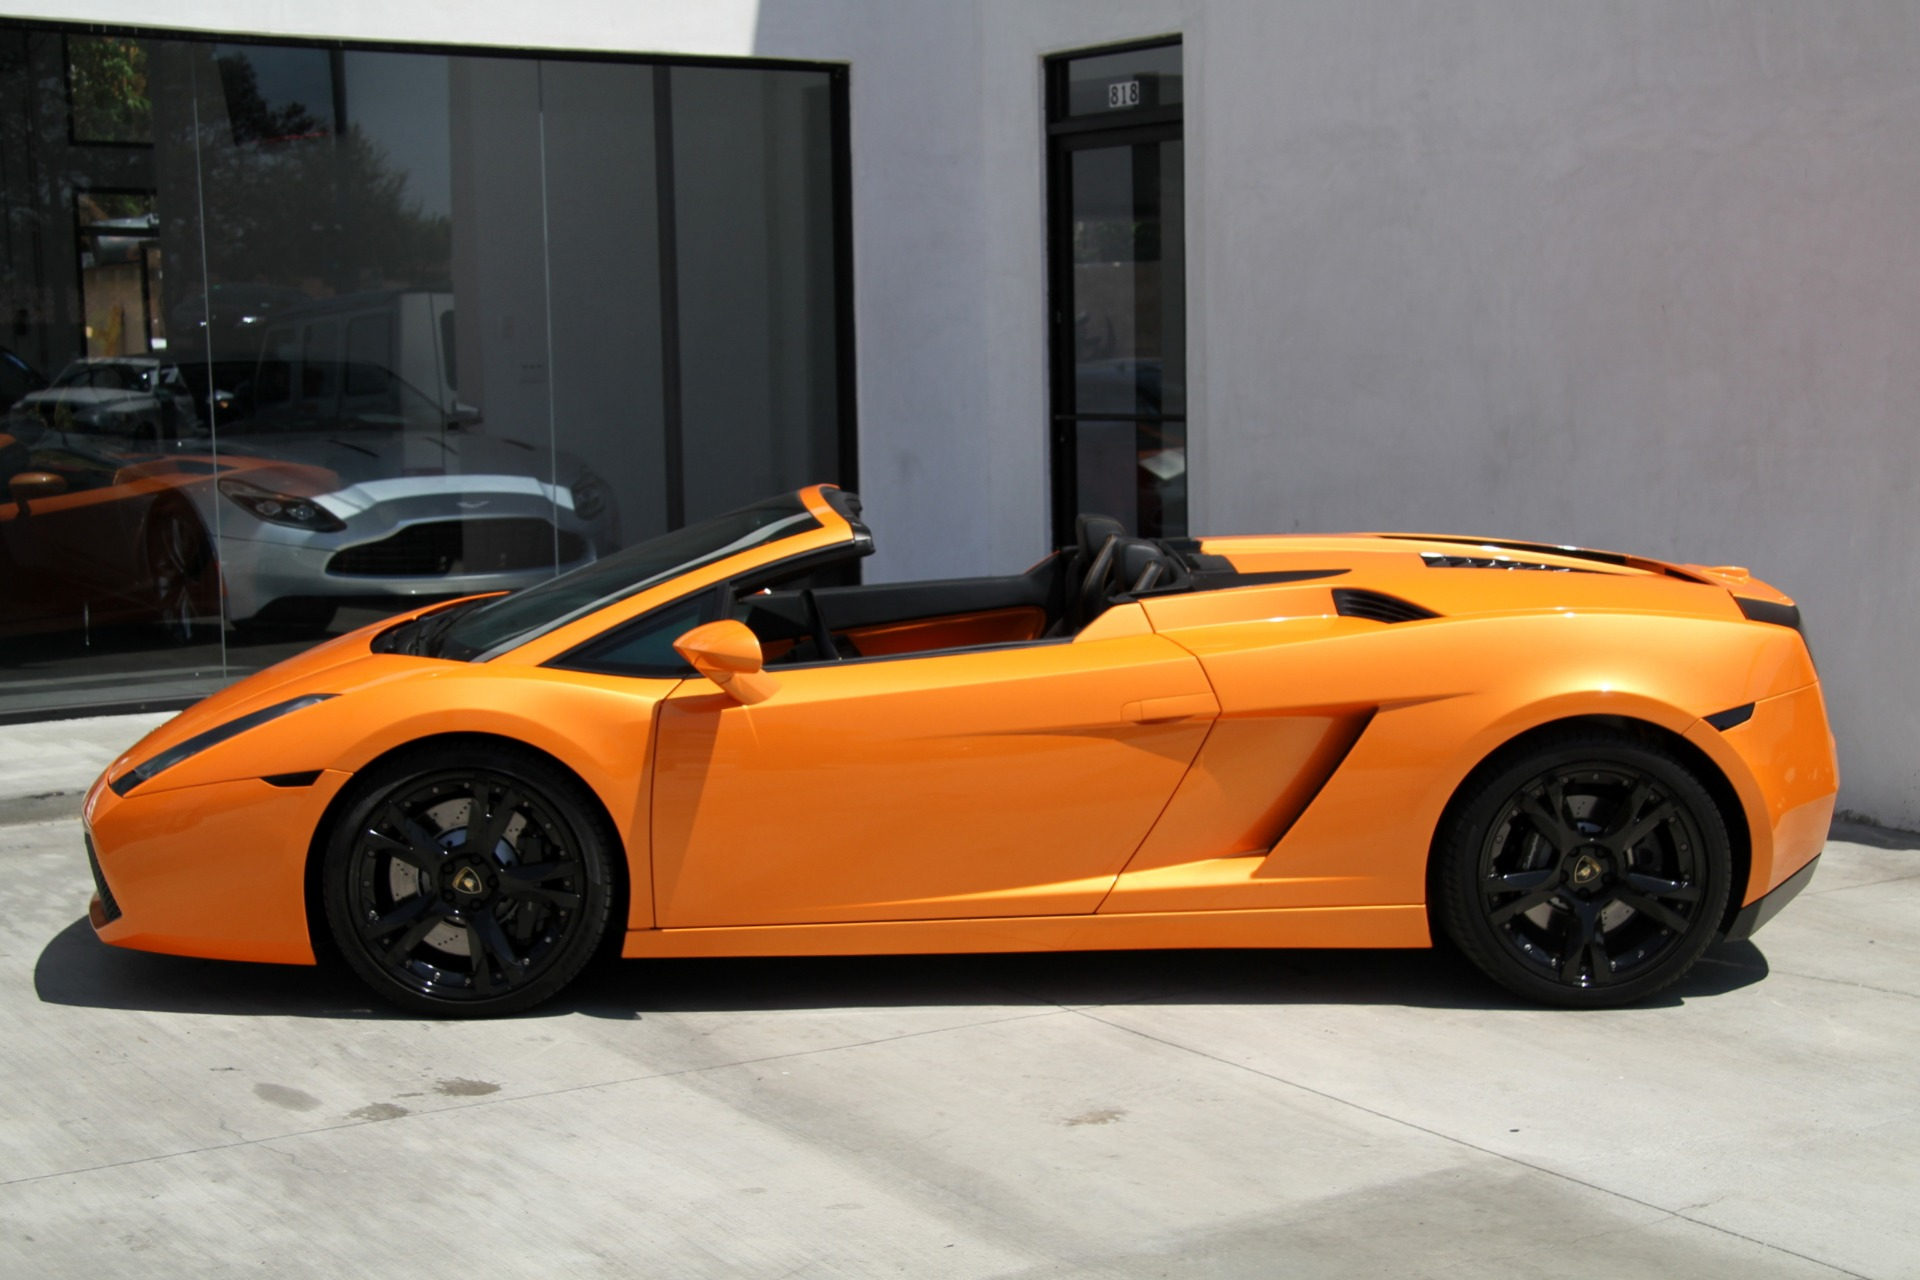 2008 Lamborghini Gallardo Spyder Stock 6255 For Sale Near Redondo